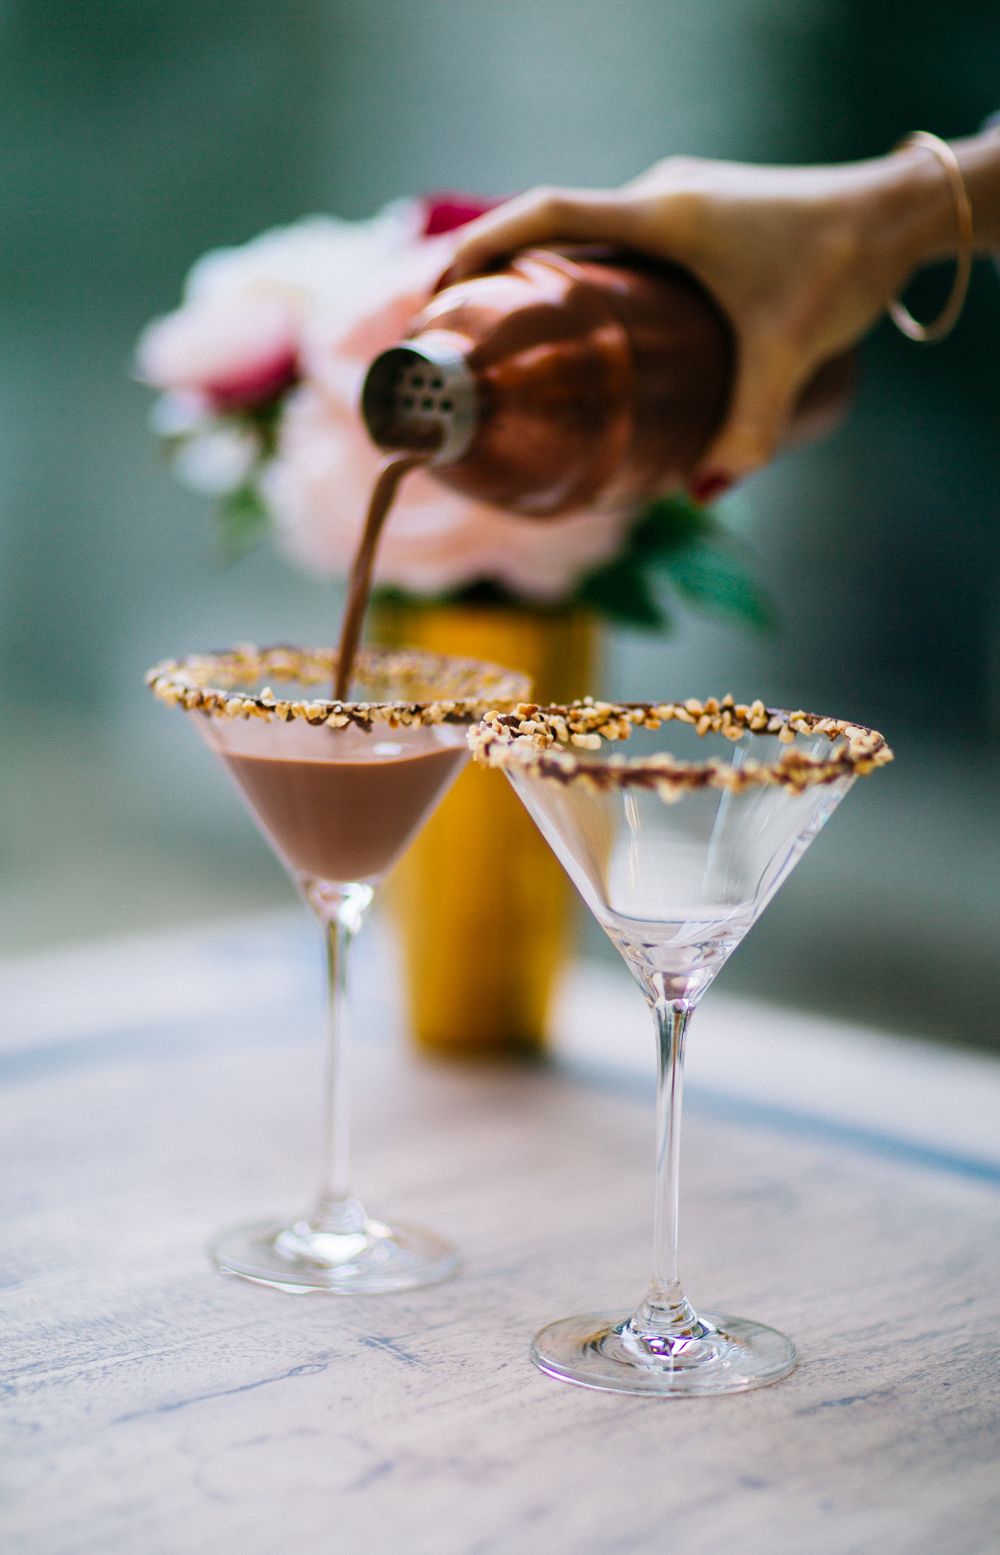 thelondoner http://www.thelondoner.me/2016/03/nutella-martinis.html